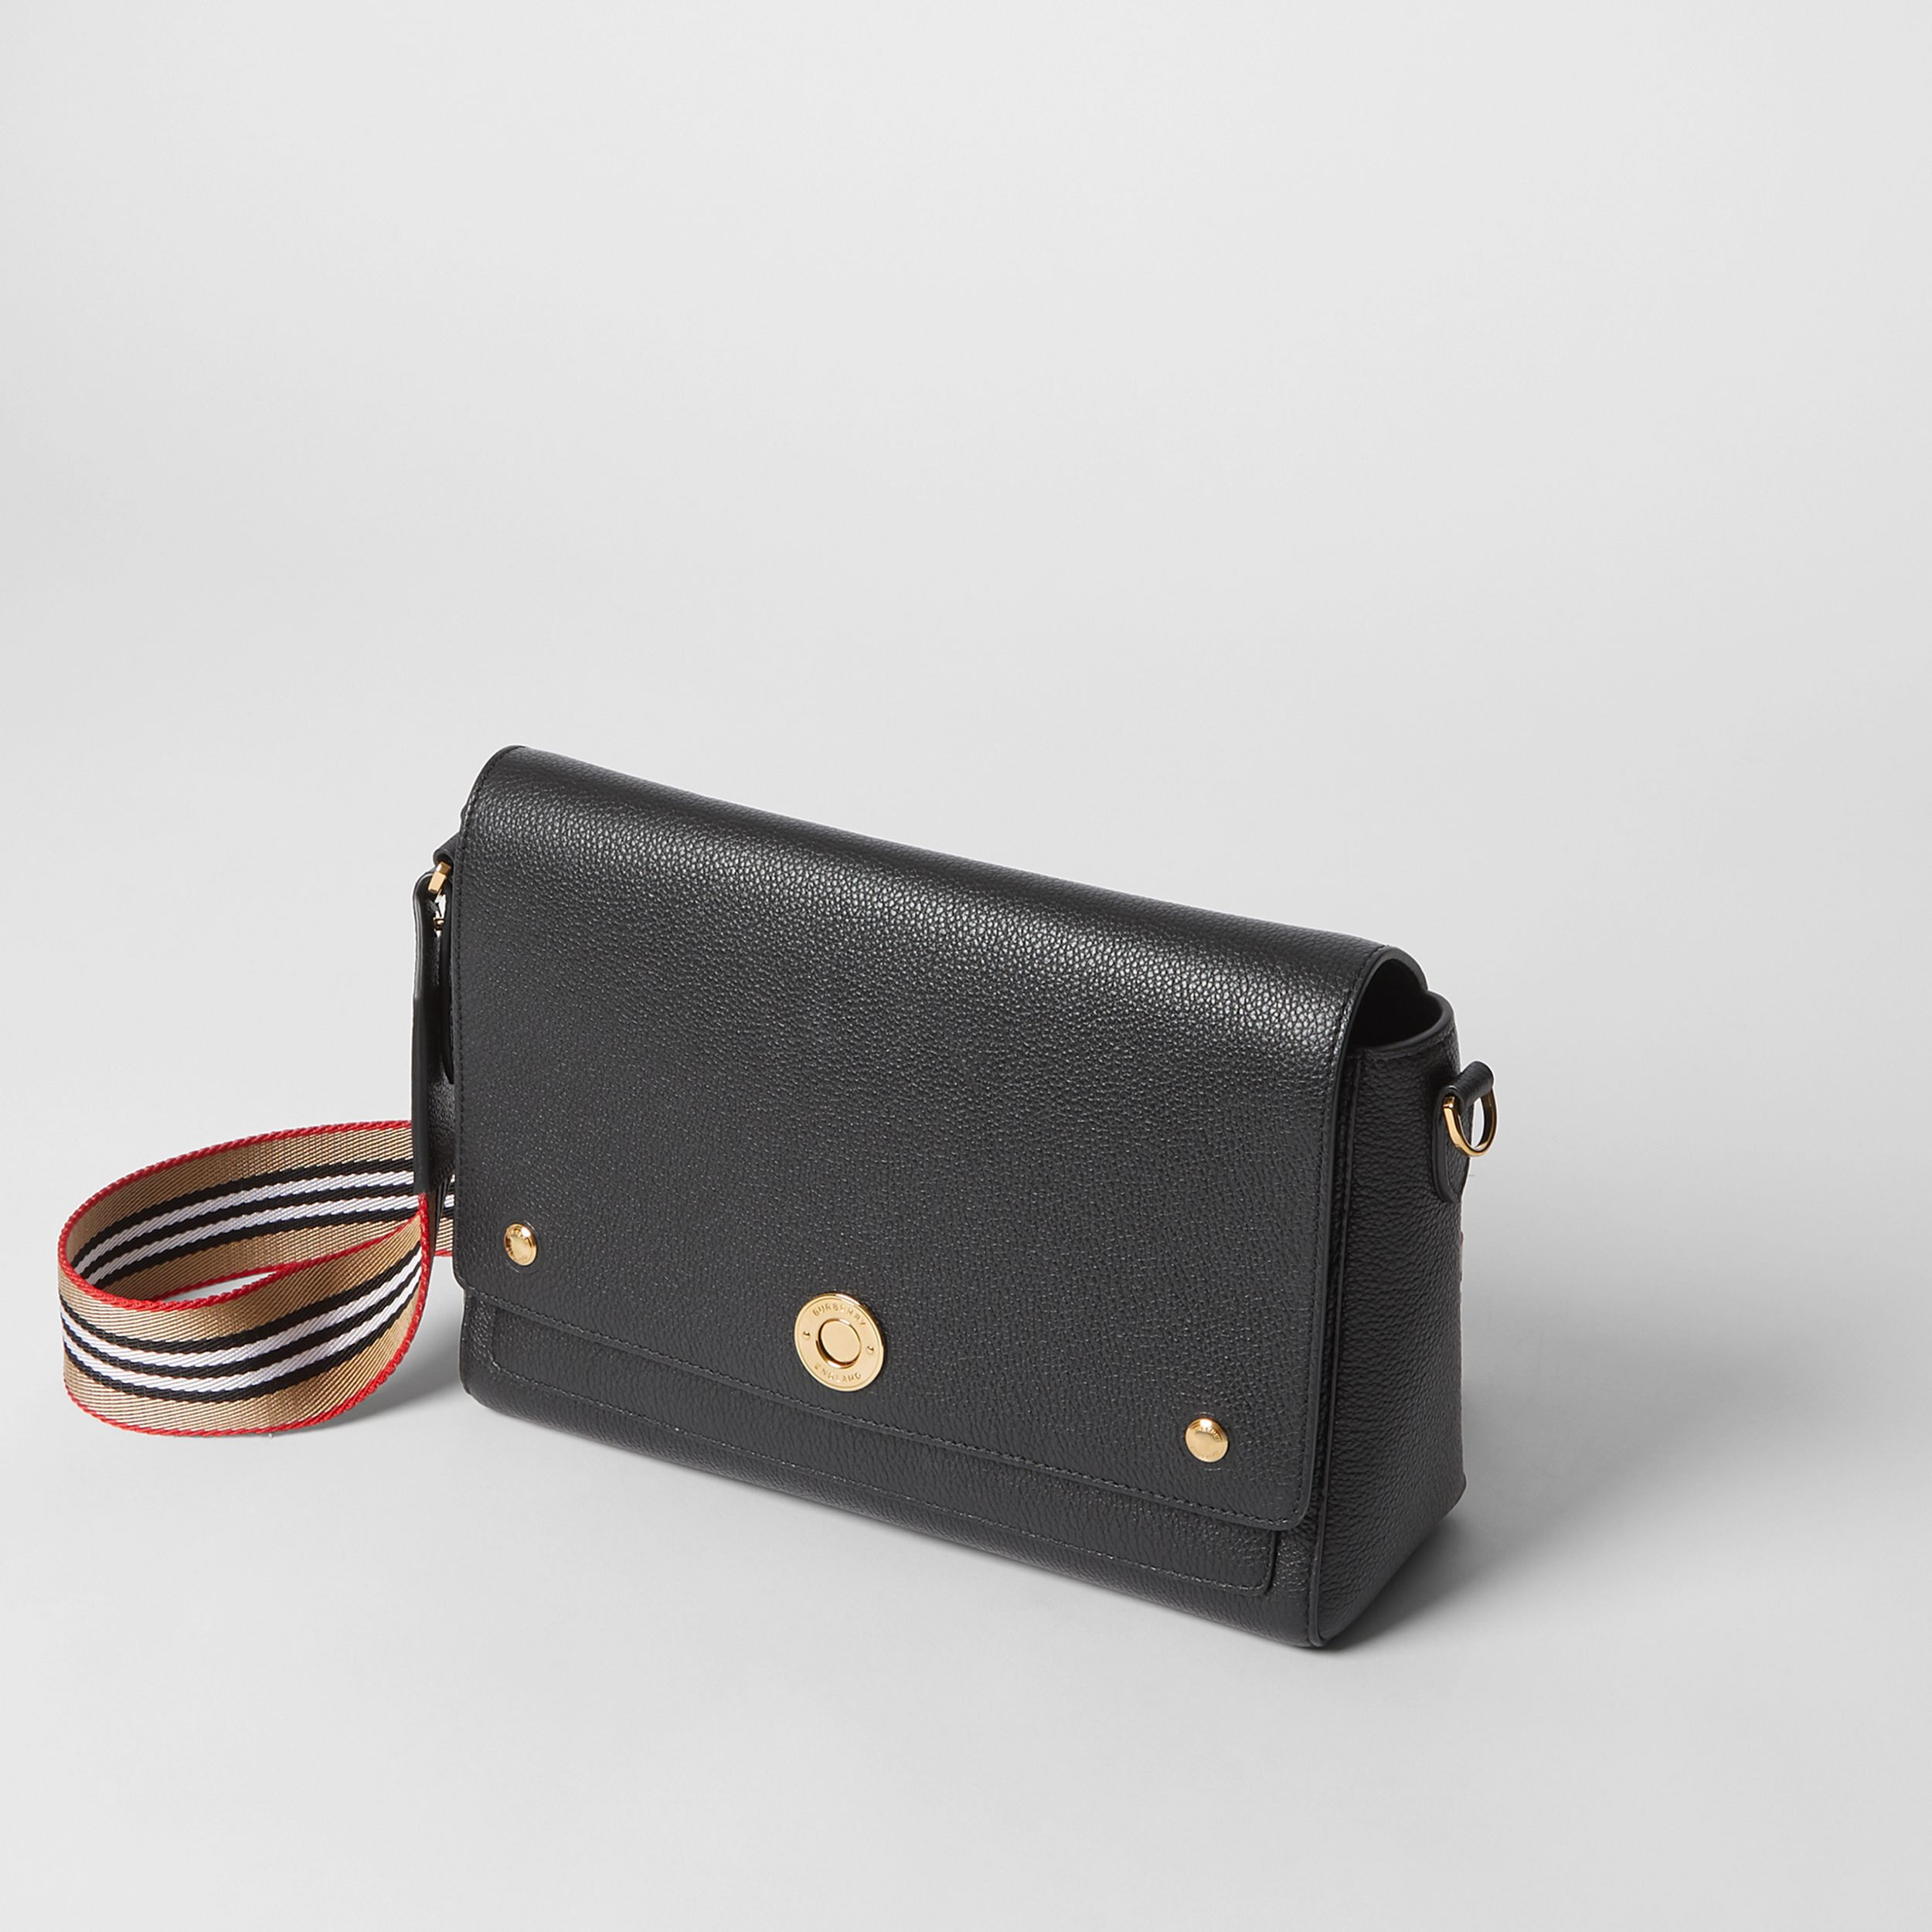 Grainy Leather Note Crossbody Bag in Black - Women | Burberry United Kingdom - 4